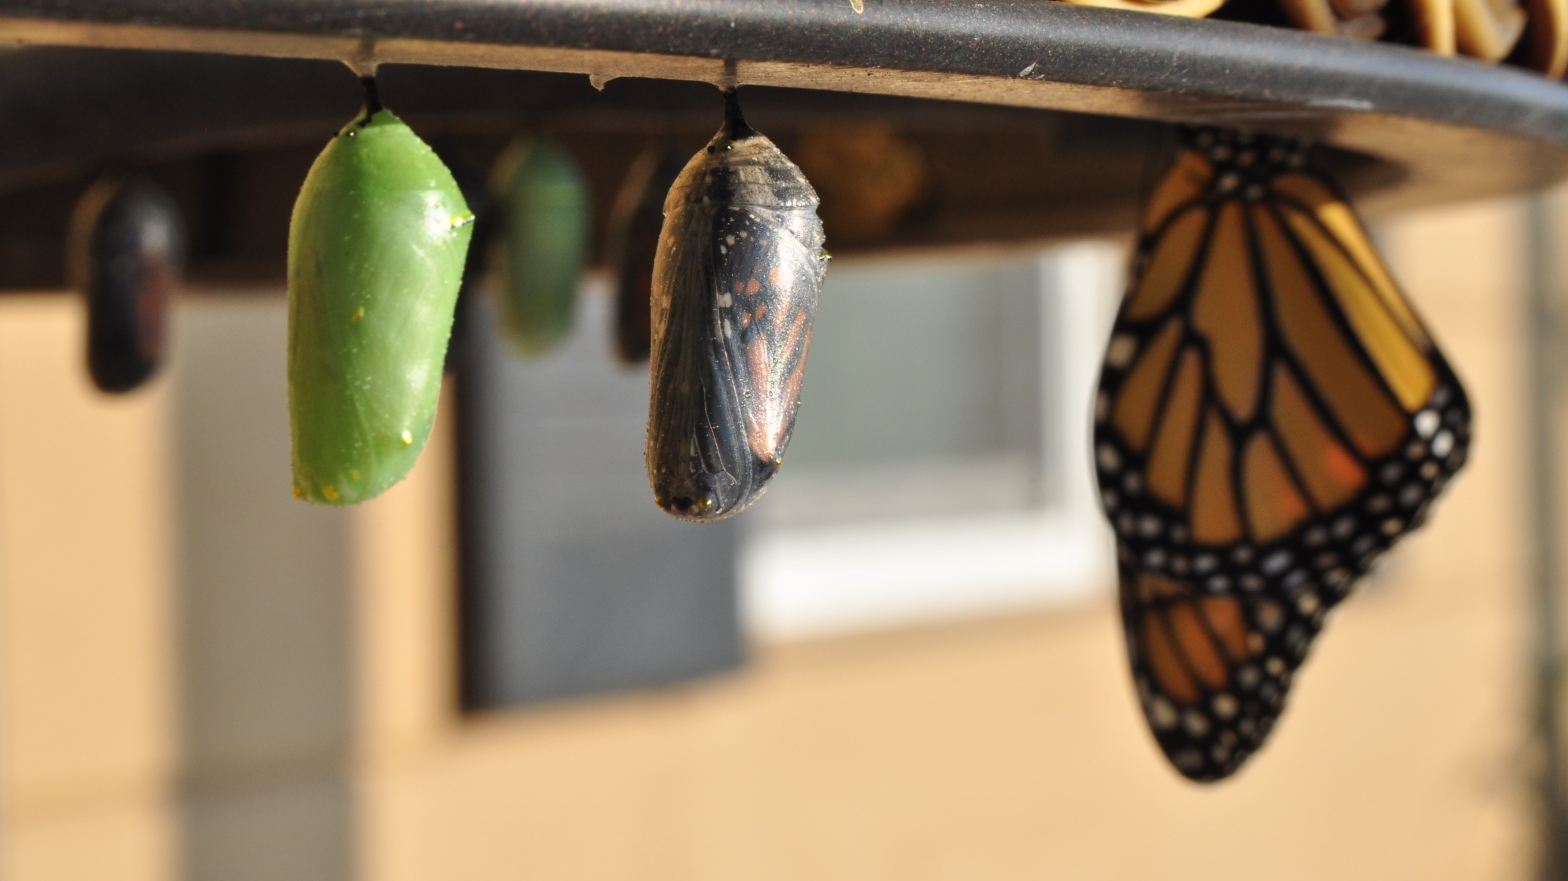 Image shows chrysalises at various stages and an emerging butterfly.